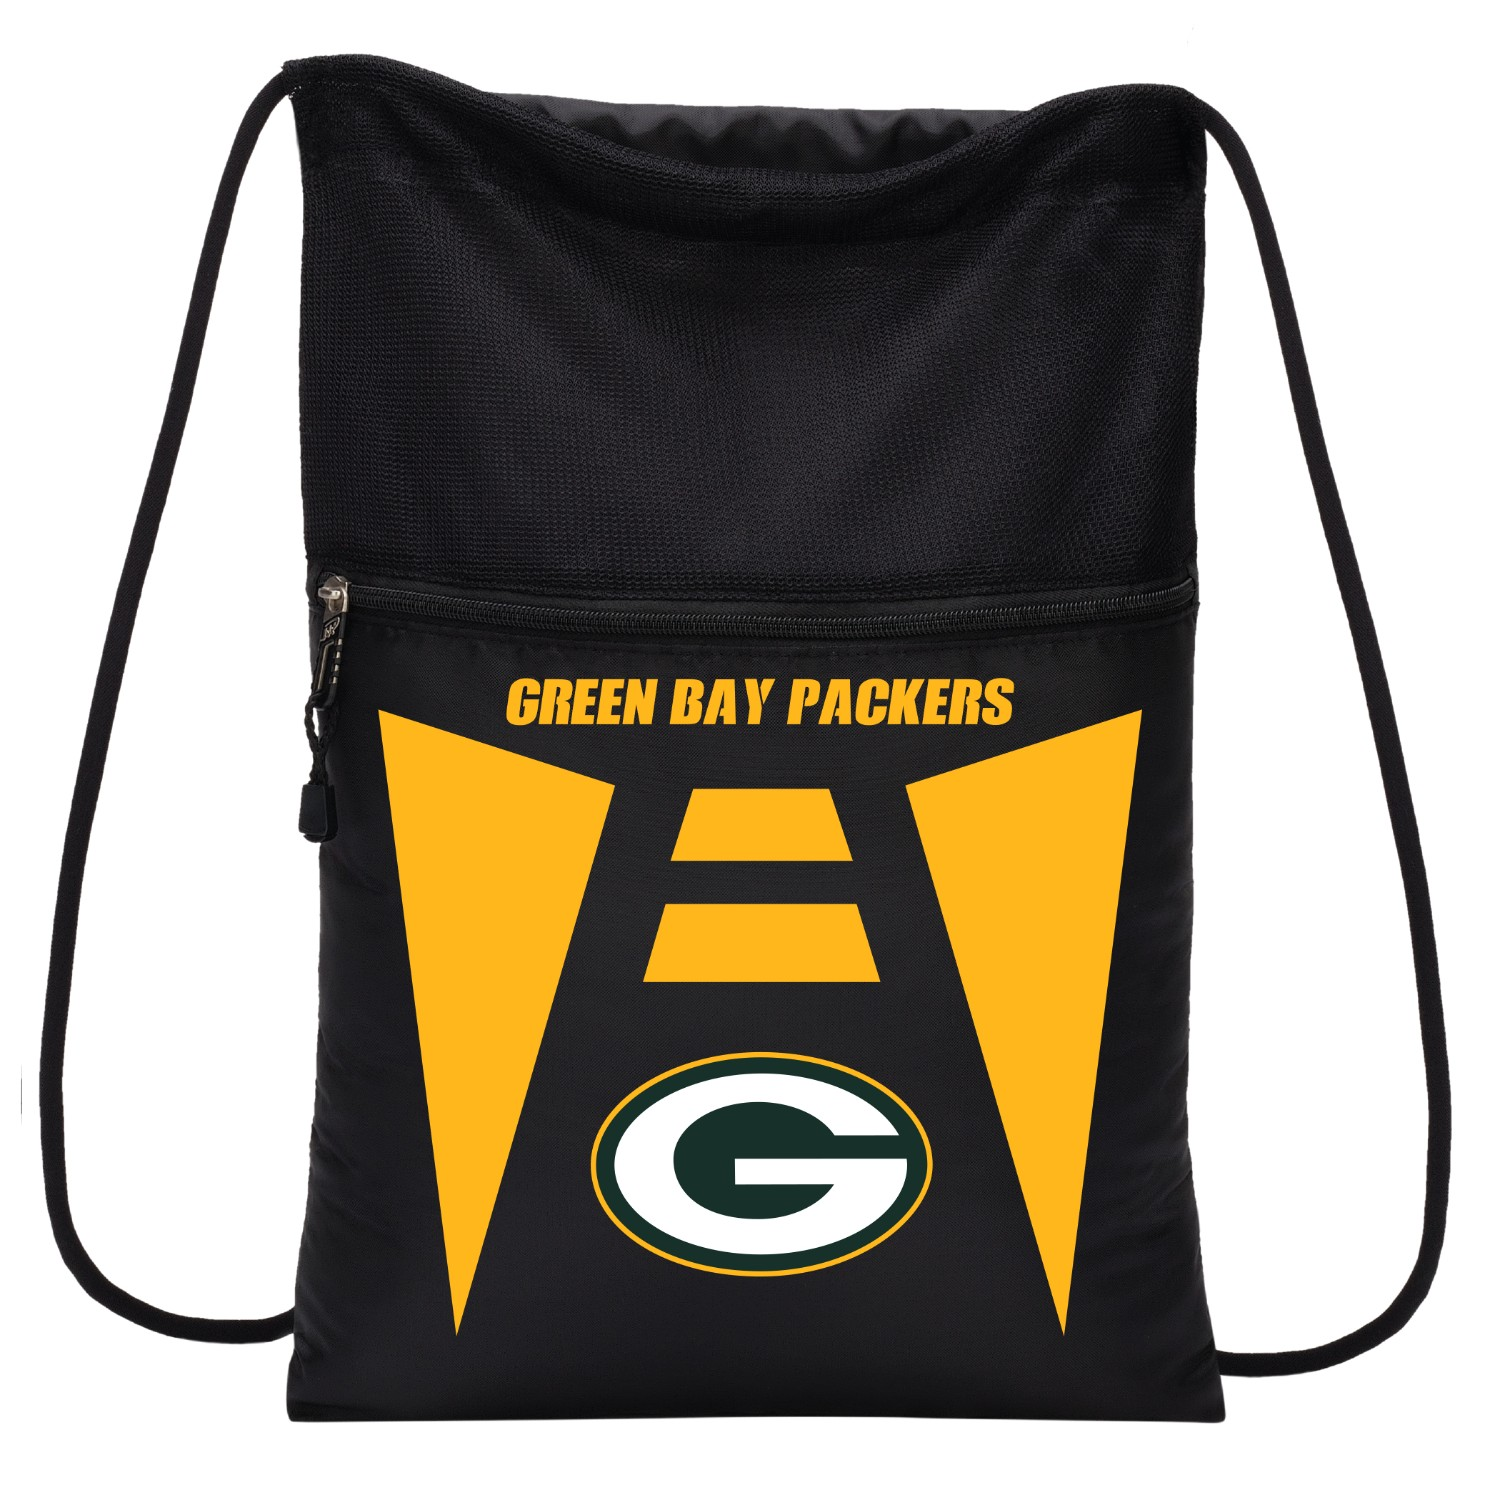 Green Bay Packers Team Tech Backsack